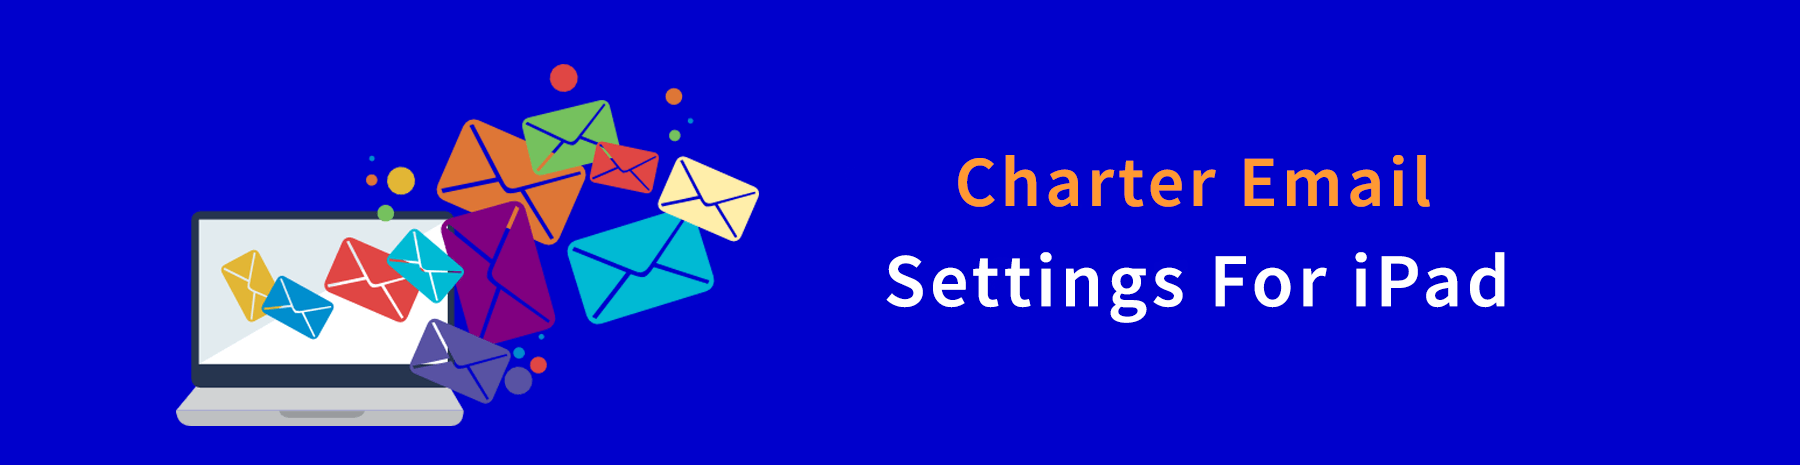 Charter-Email-Settings-iPad